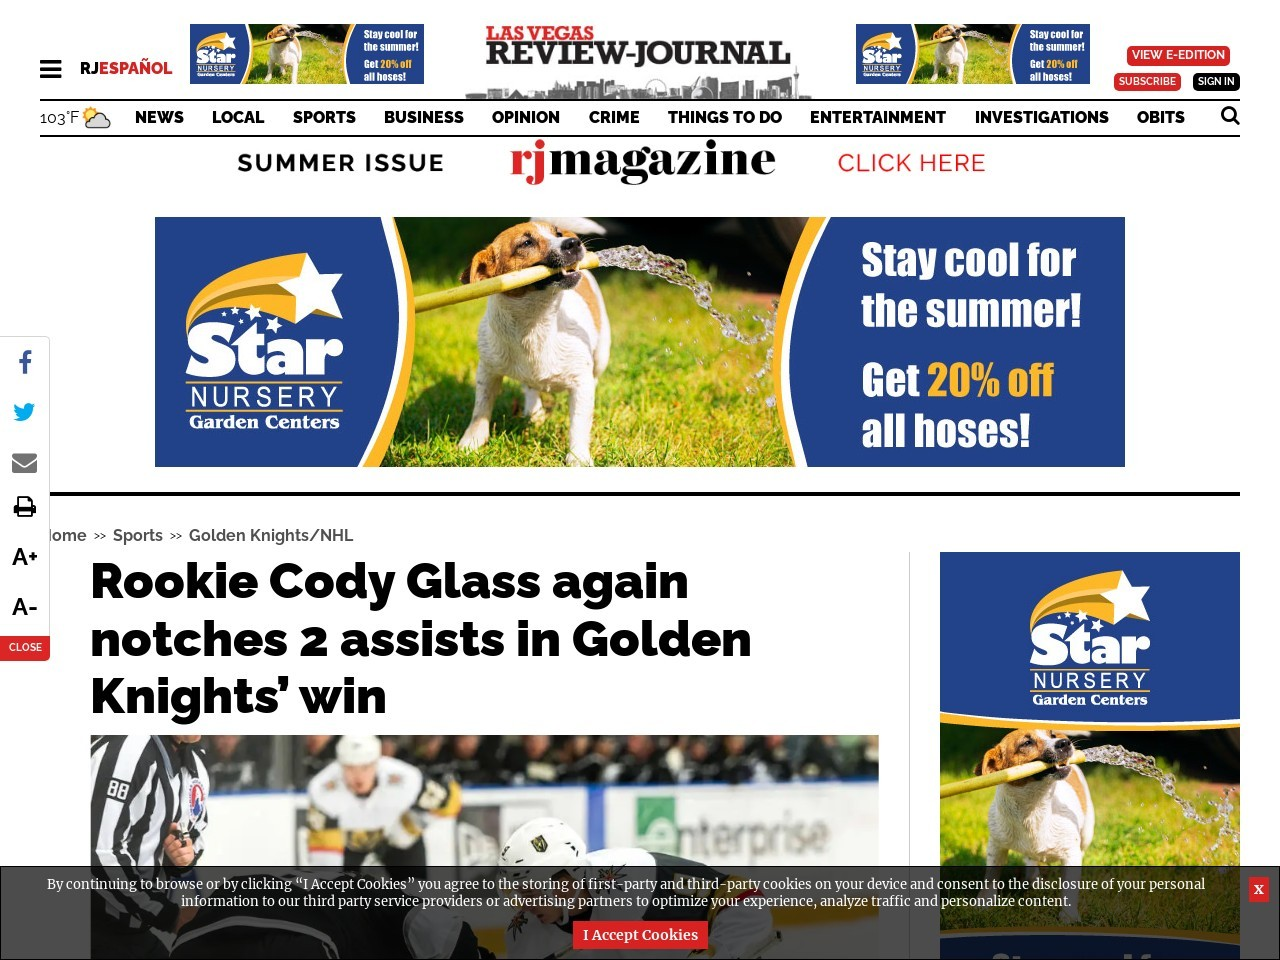 Rookie Cody Glass again notches 2 assists in Golden Knights' win